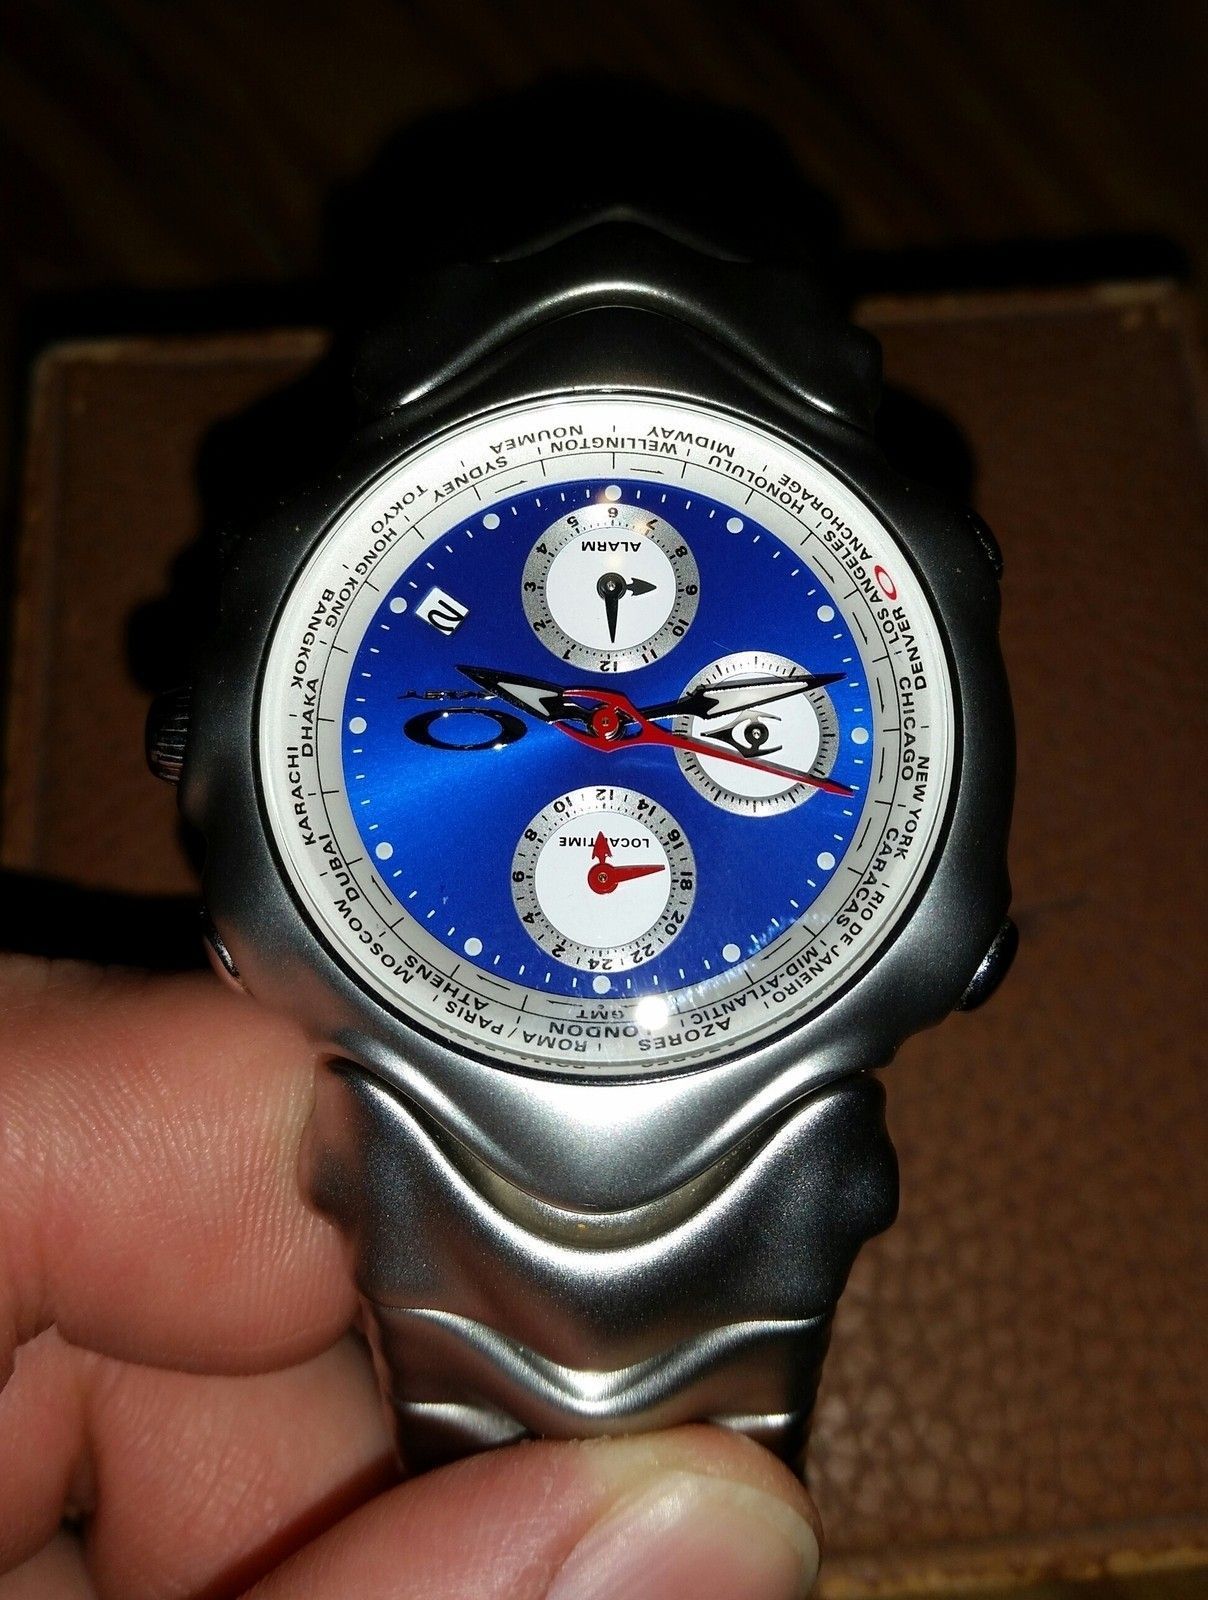 GMT Silver with Blue Face - uploadfromtaptalk1416890255685.jpg